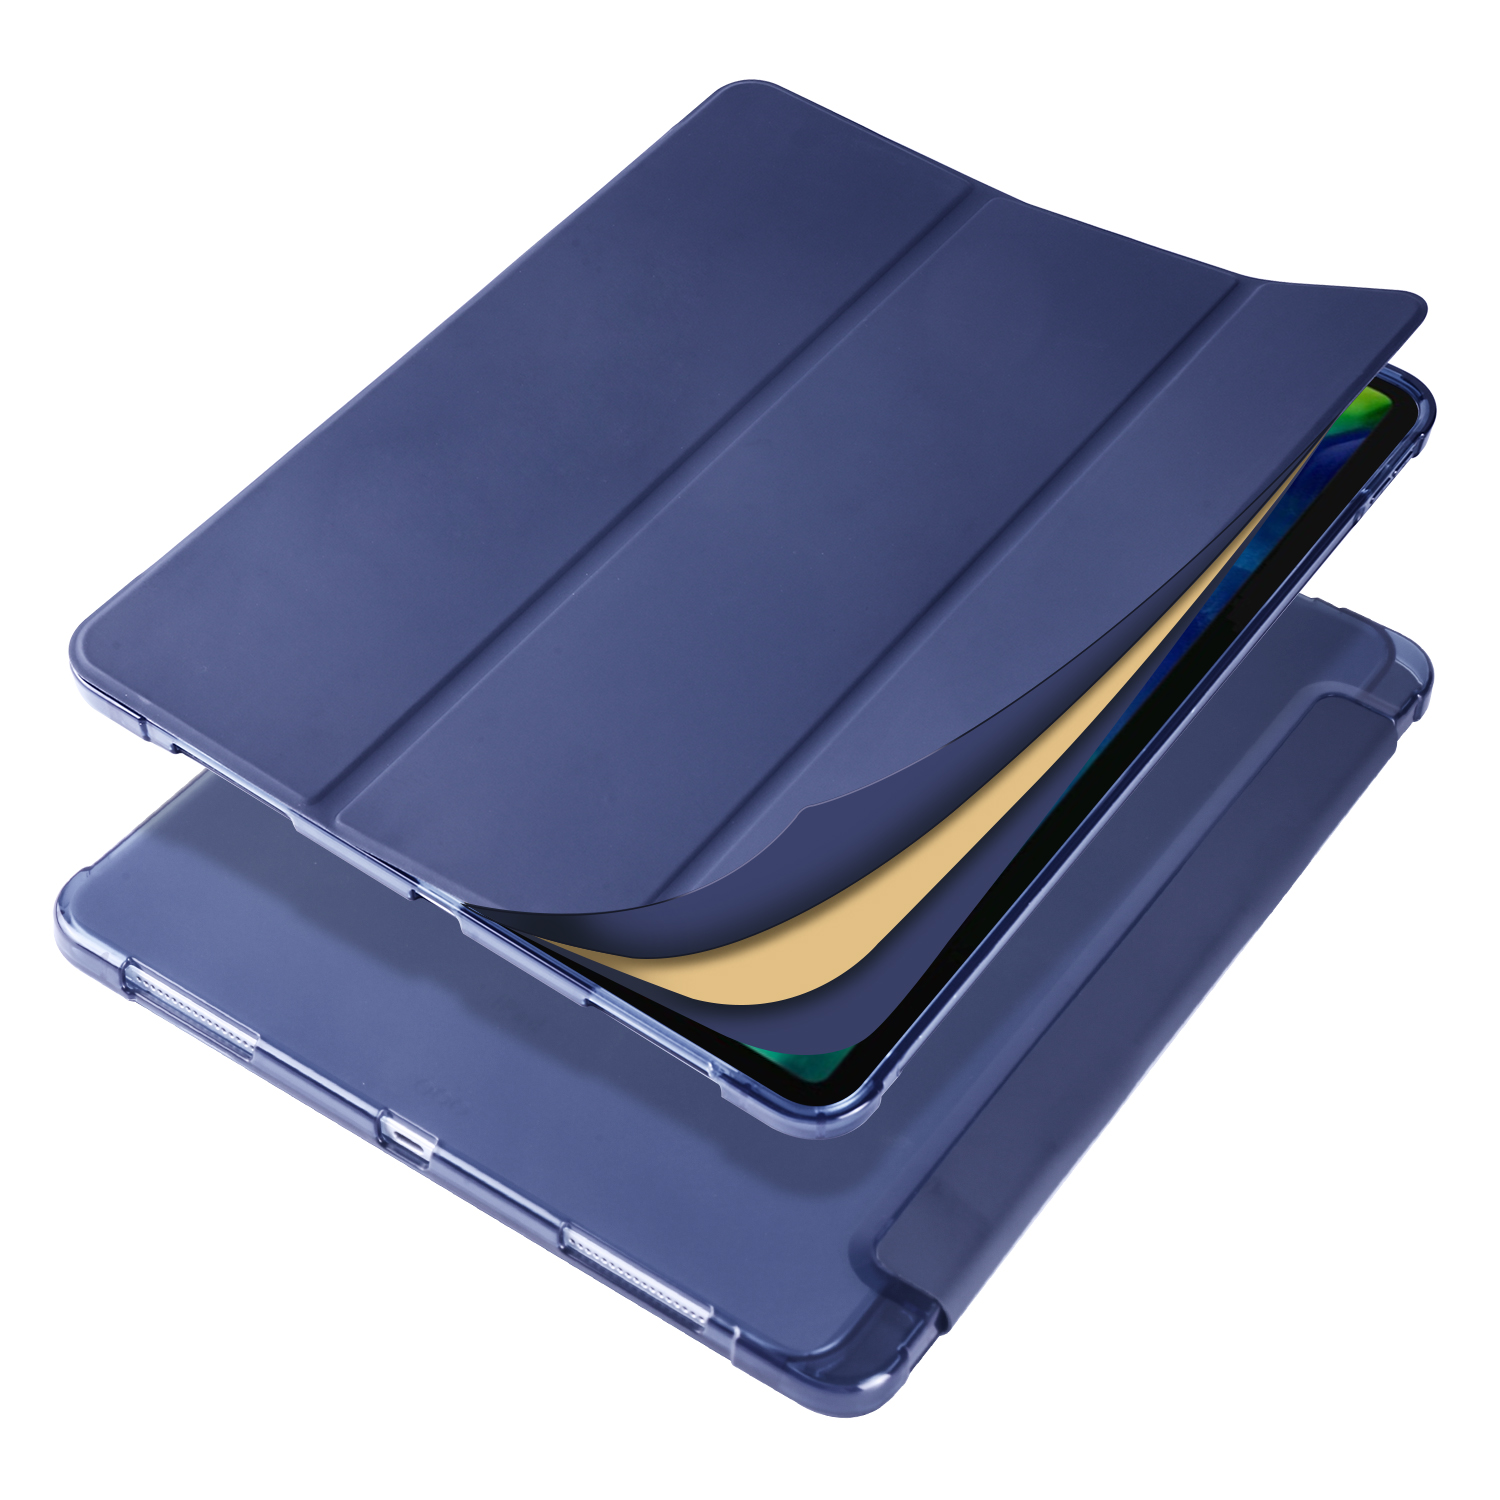 Smart Soft Shockproof Case for iPad Pro 12 9 2020 2018 3rd 4th Generation with Pen